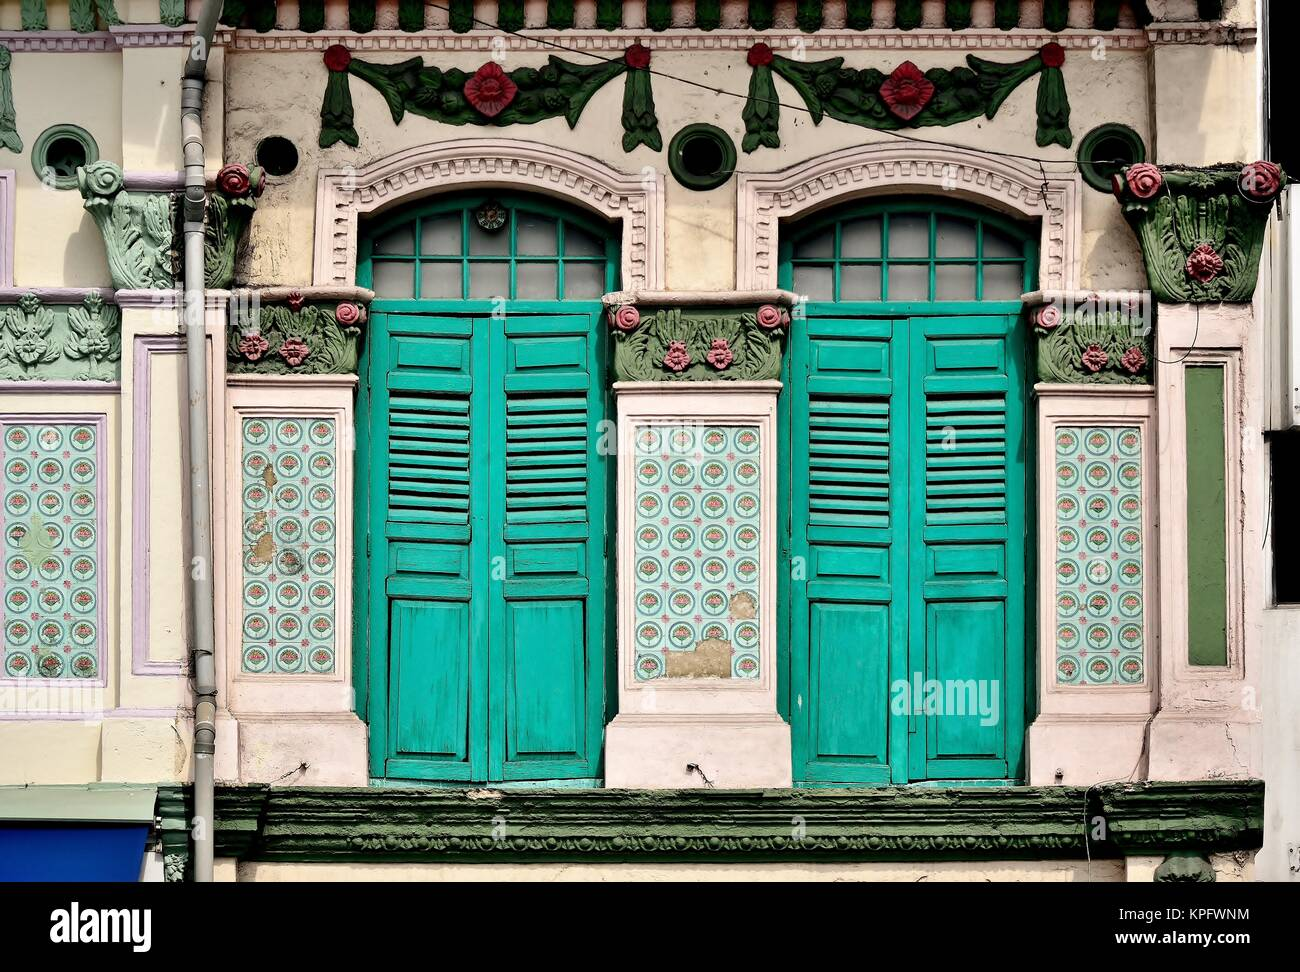 India House Glass Stock Photos & India House Glass Stock Images - Alamy